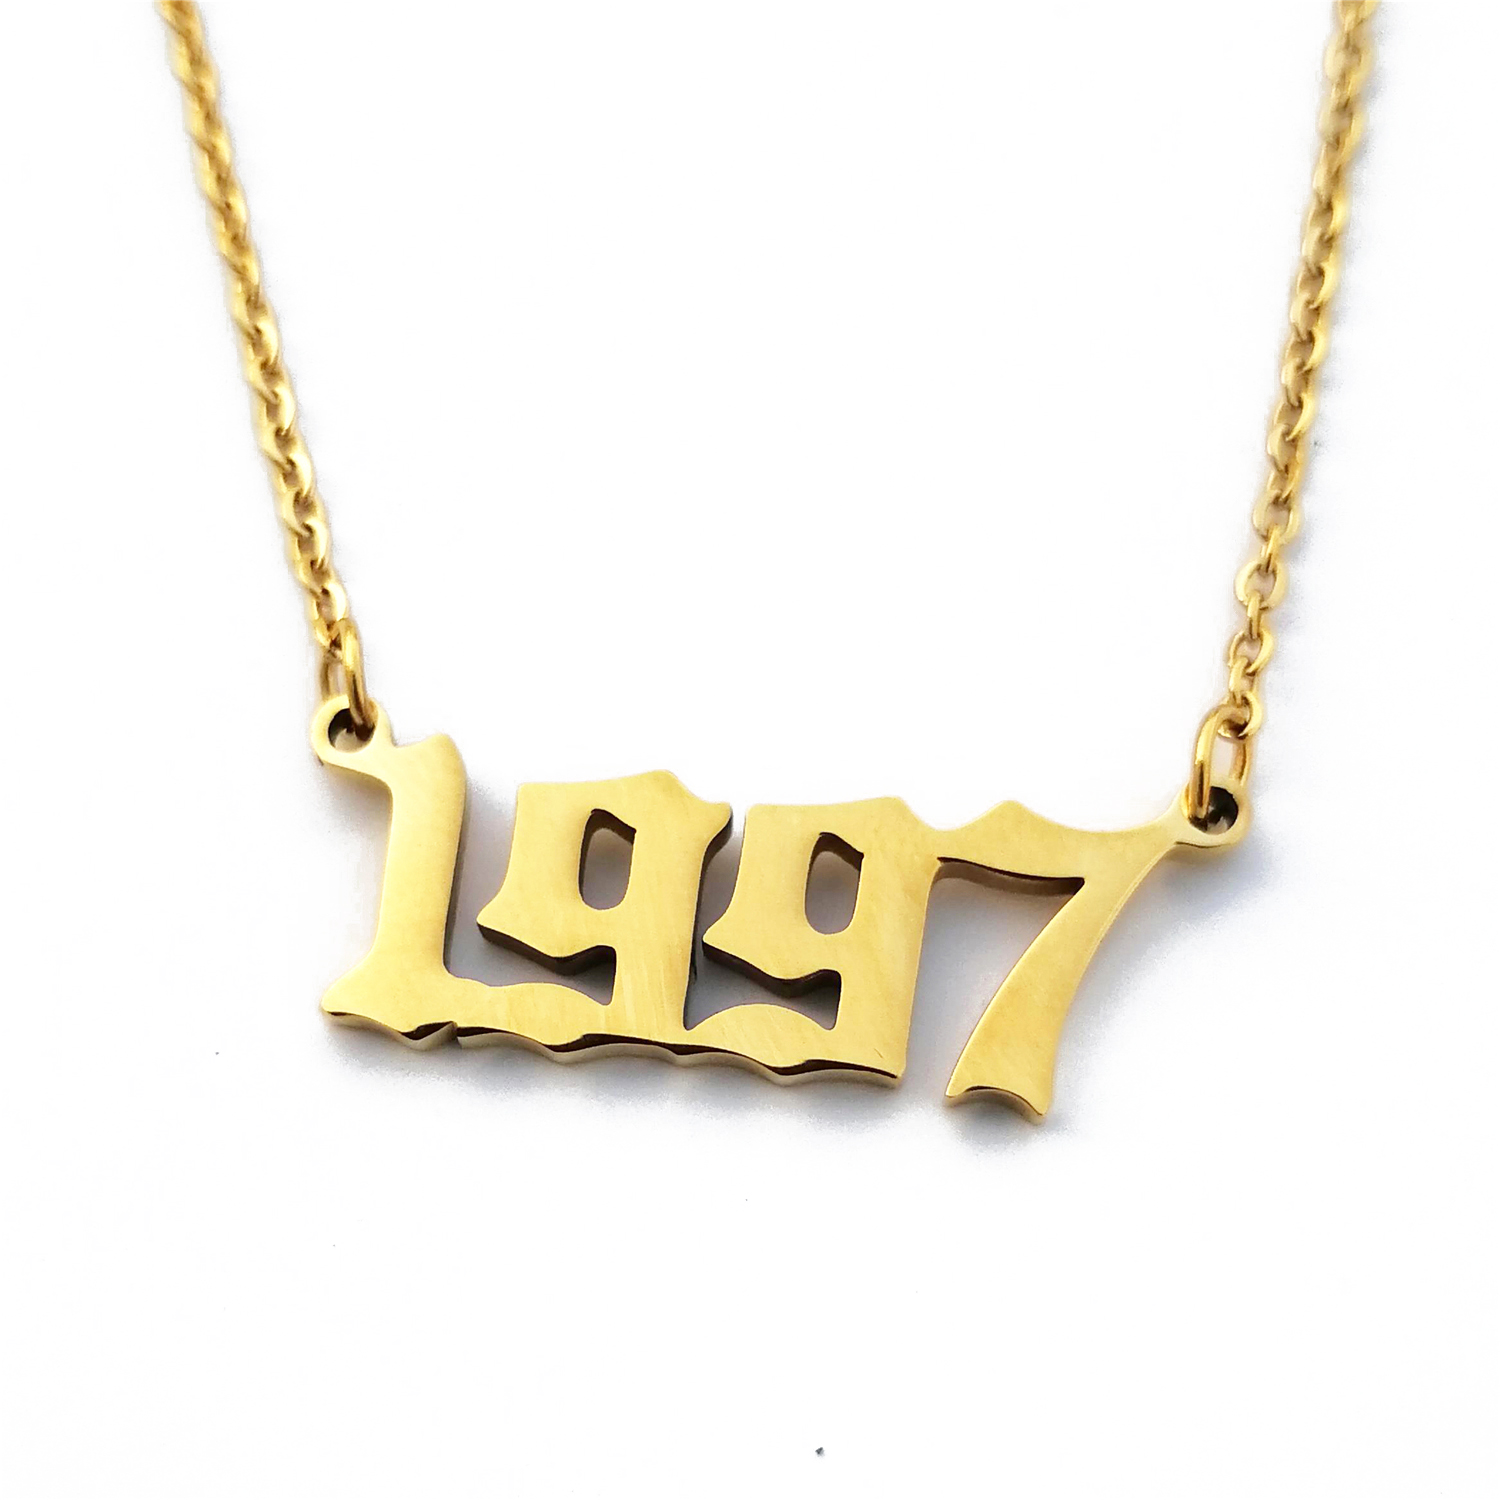 Custom Jewelry Personalized Birthday Year 1997 Number Necklace For Women Collier Femme BFF Statement Pendant Necklace Gold Chain